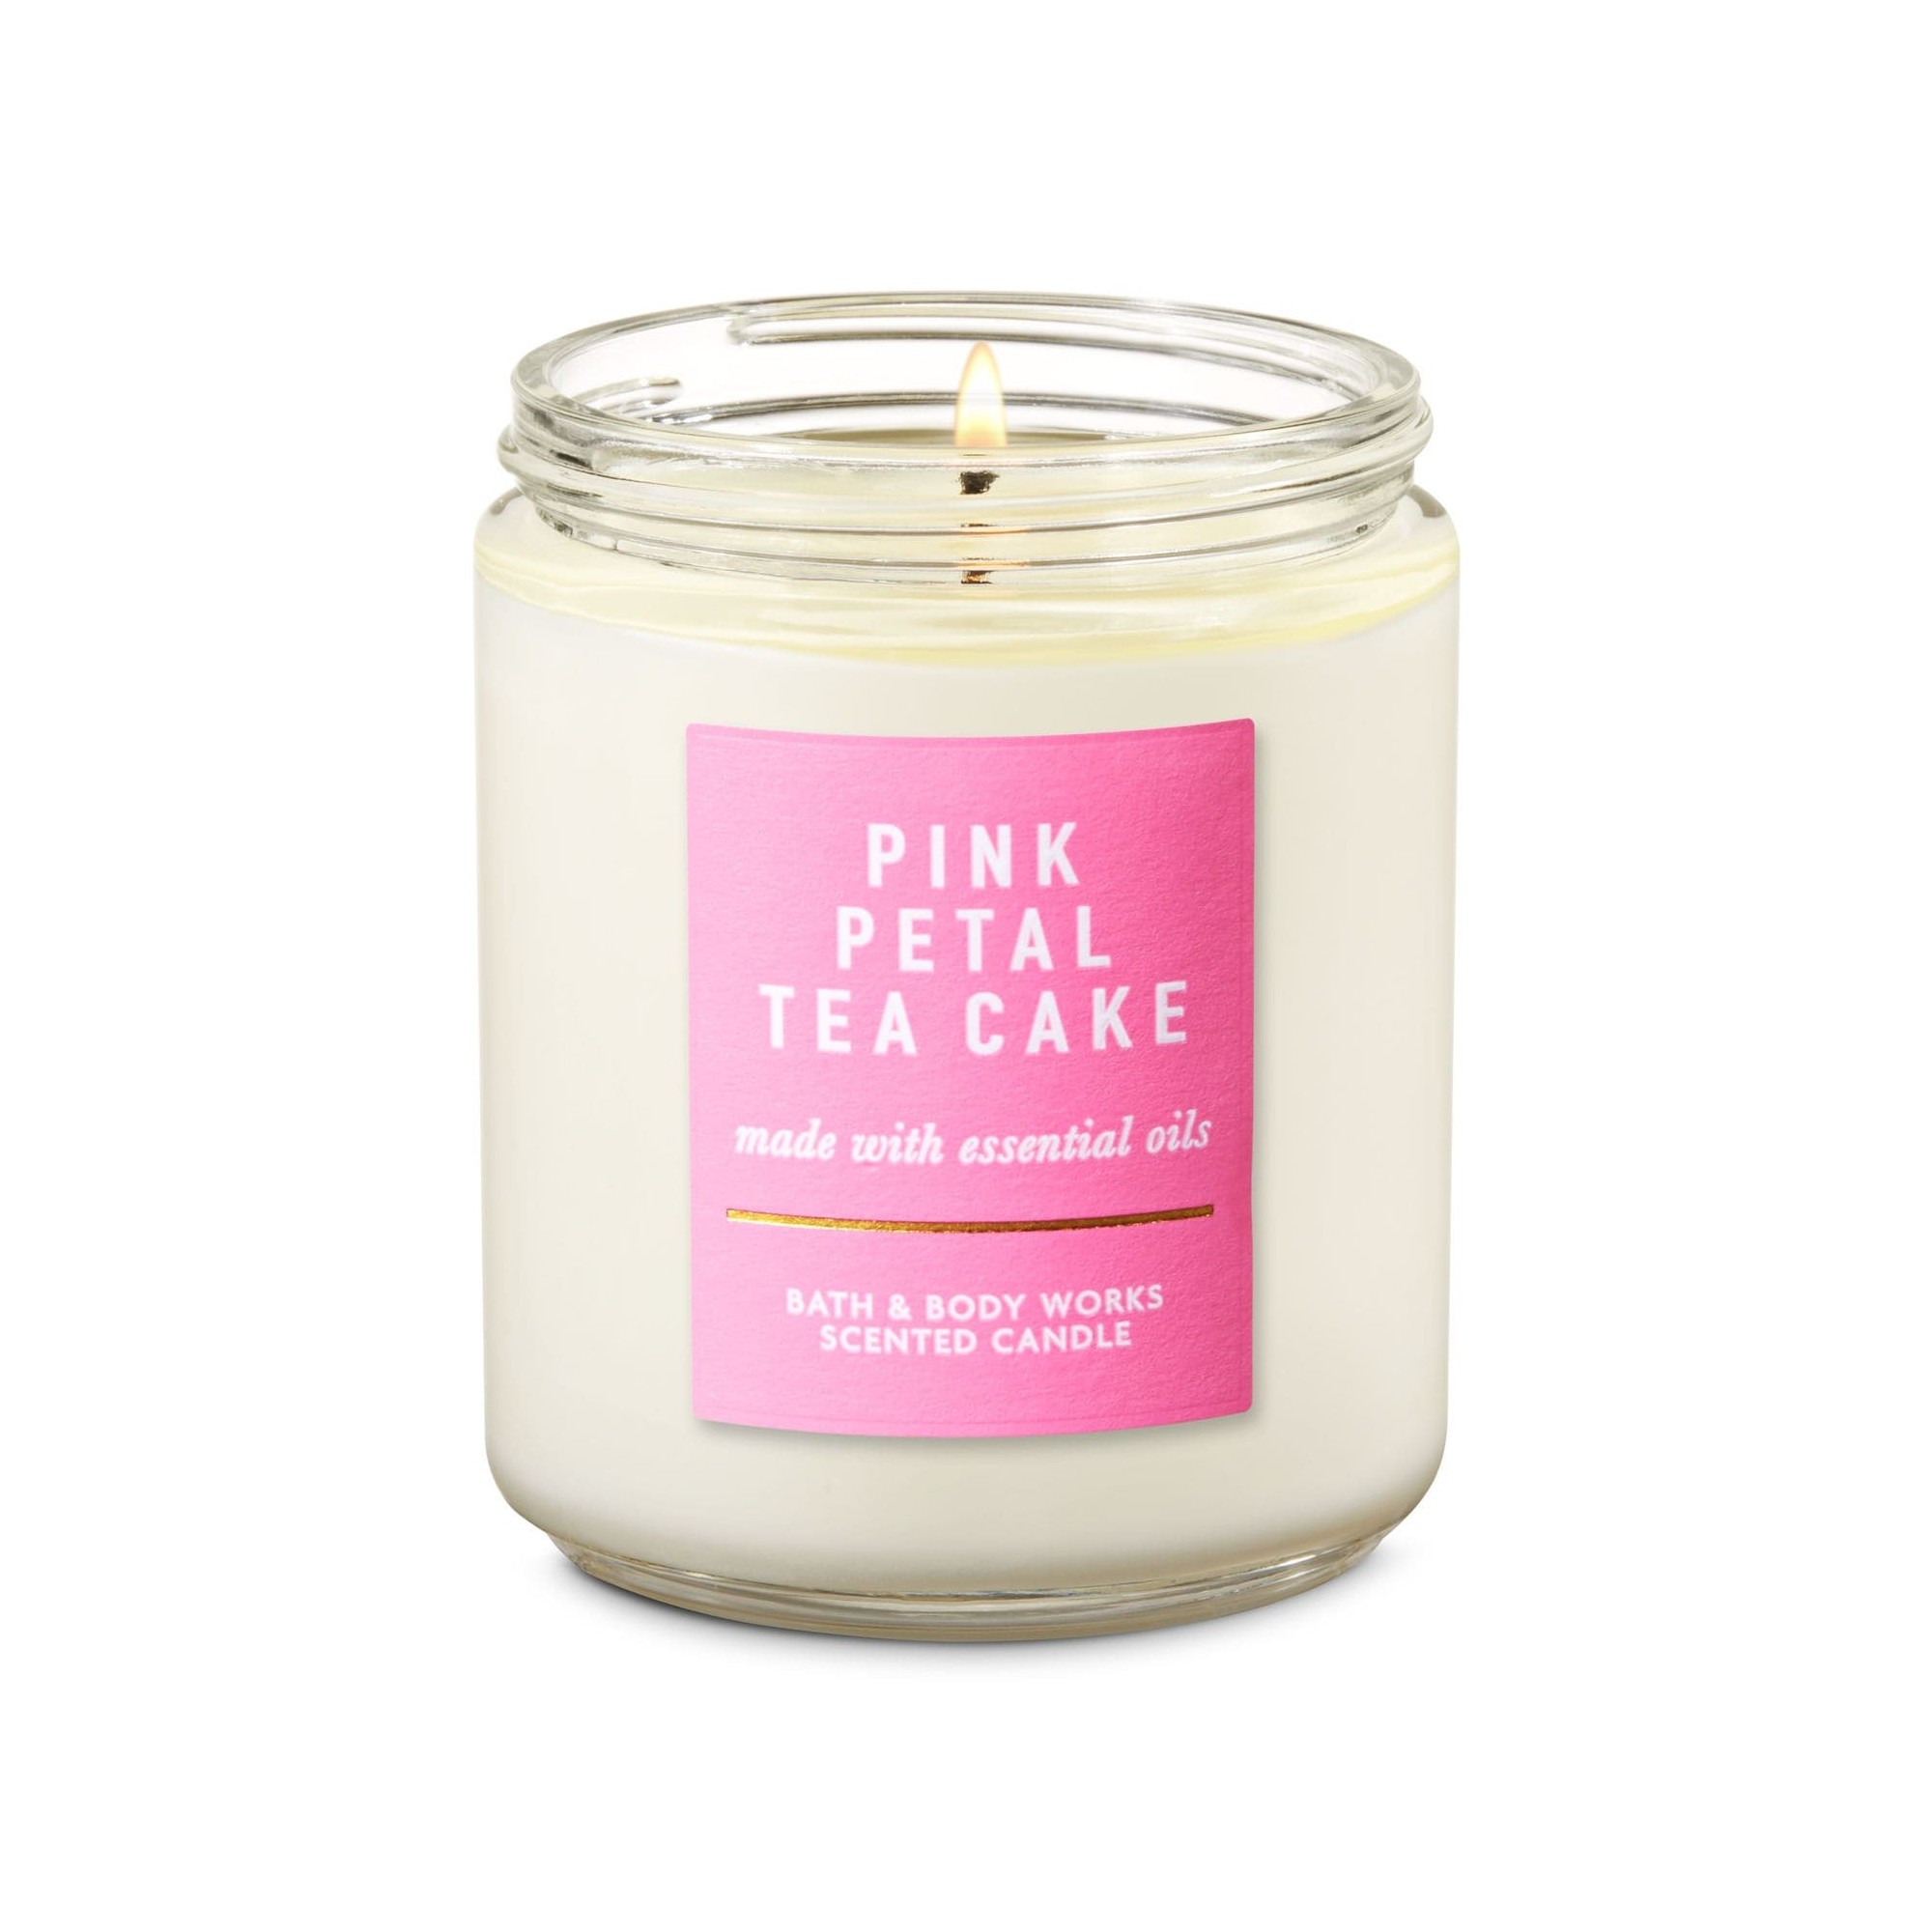 Bath & Body Works Pink Petal Tea Cake Scented Candle